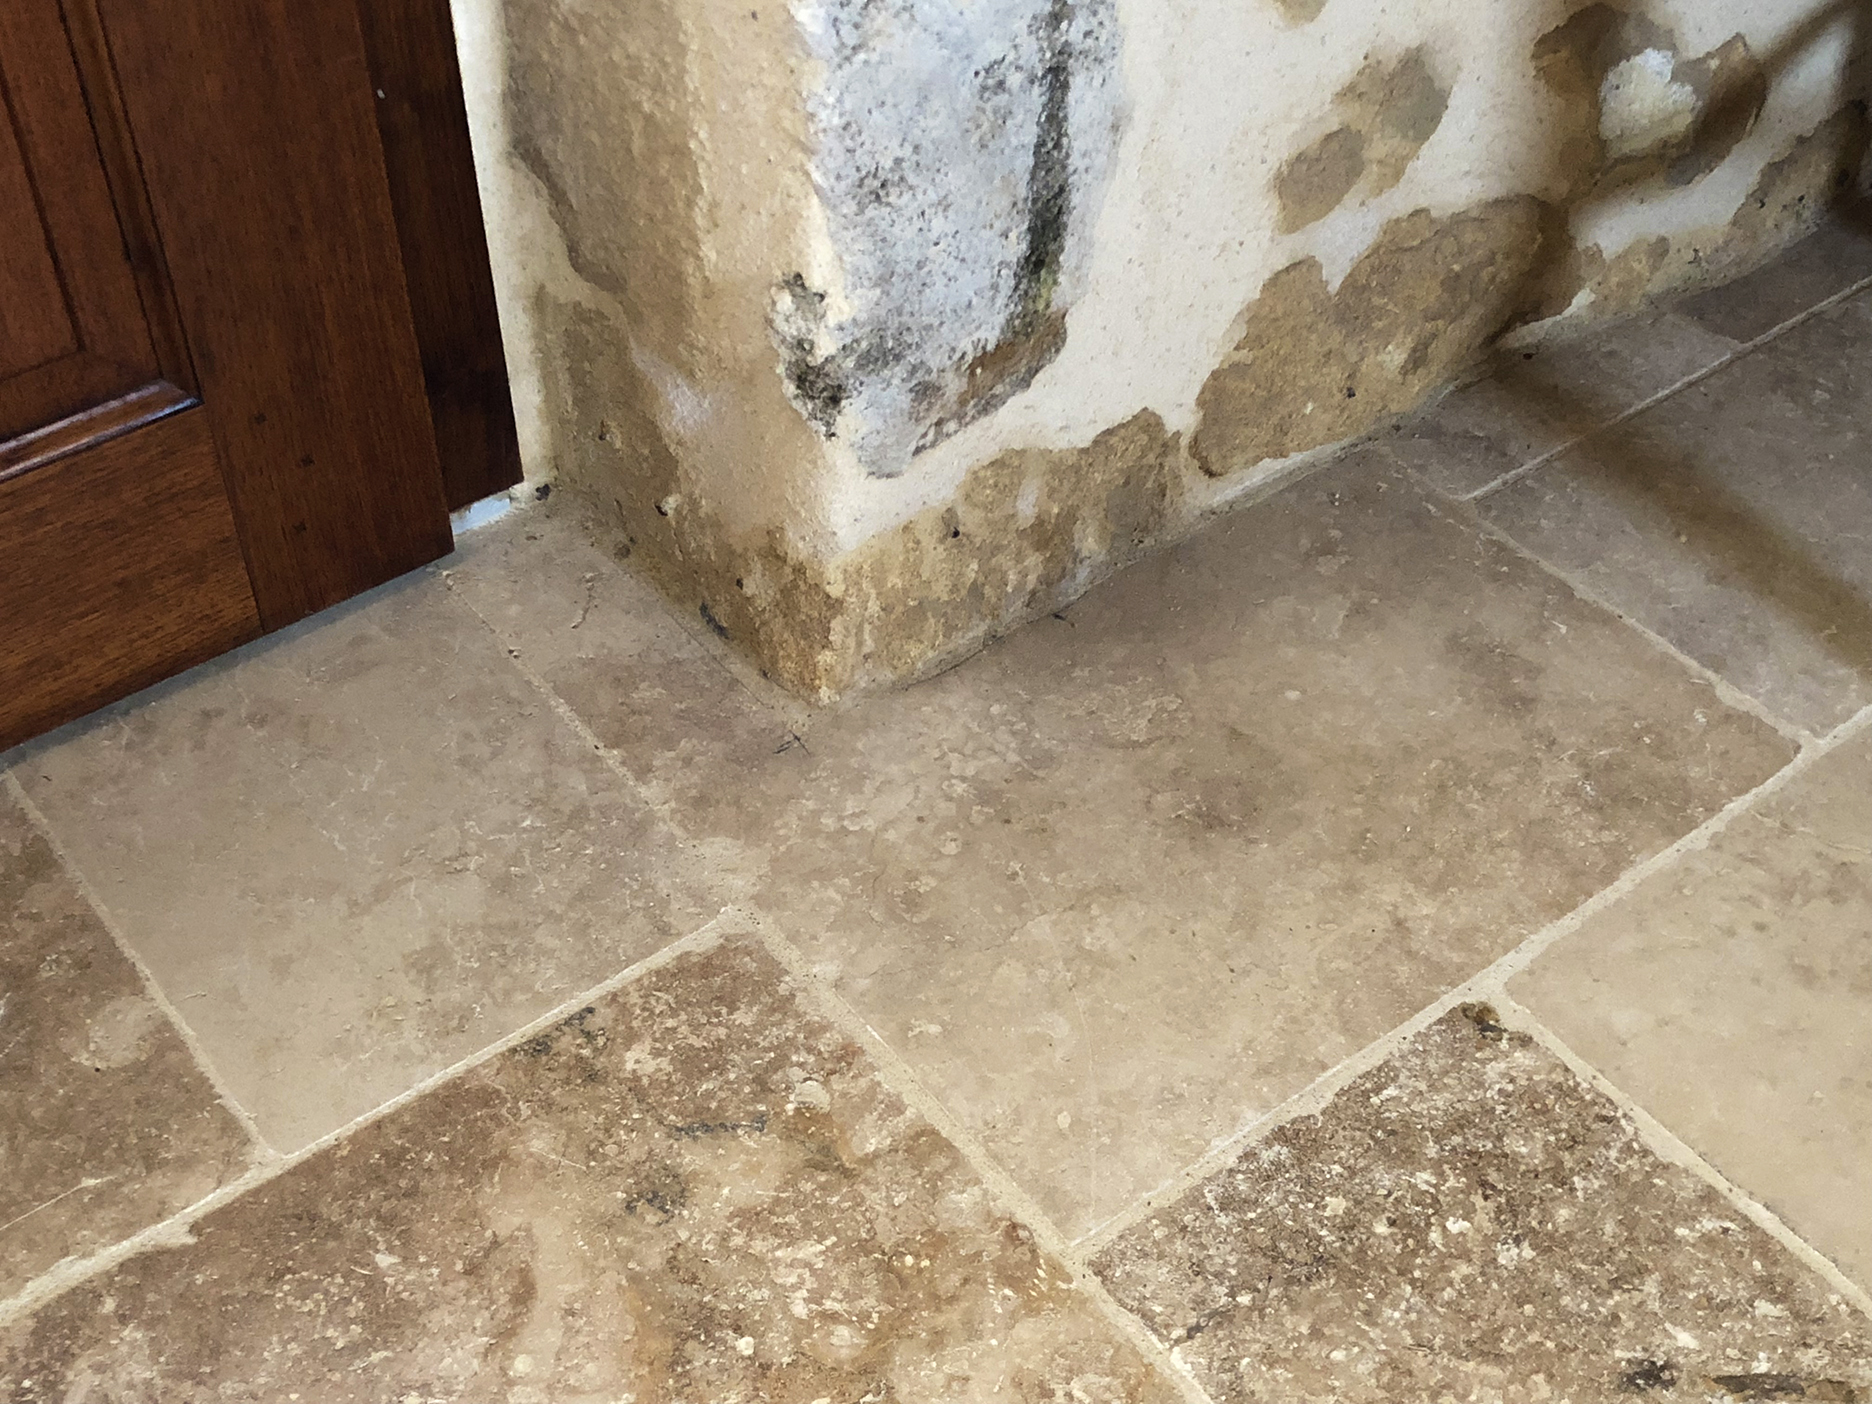 Travertine with grout